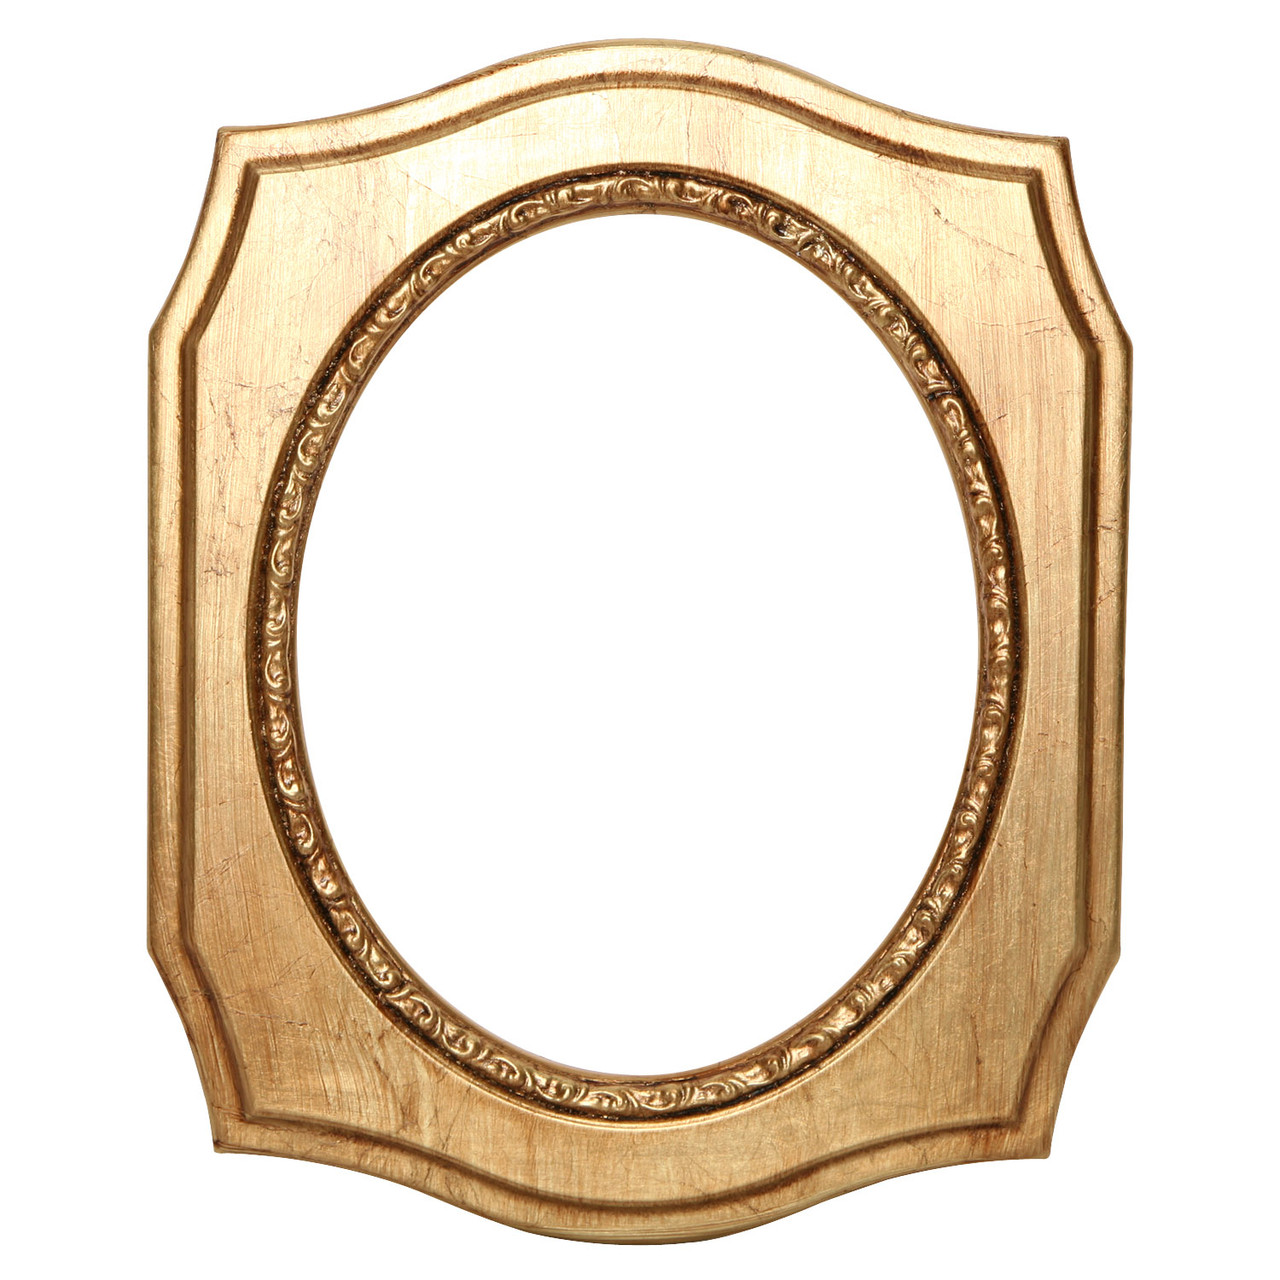 Oval Frame In Gold Leaf Finish Antique Stripping On Victorian